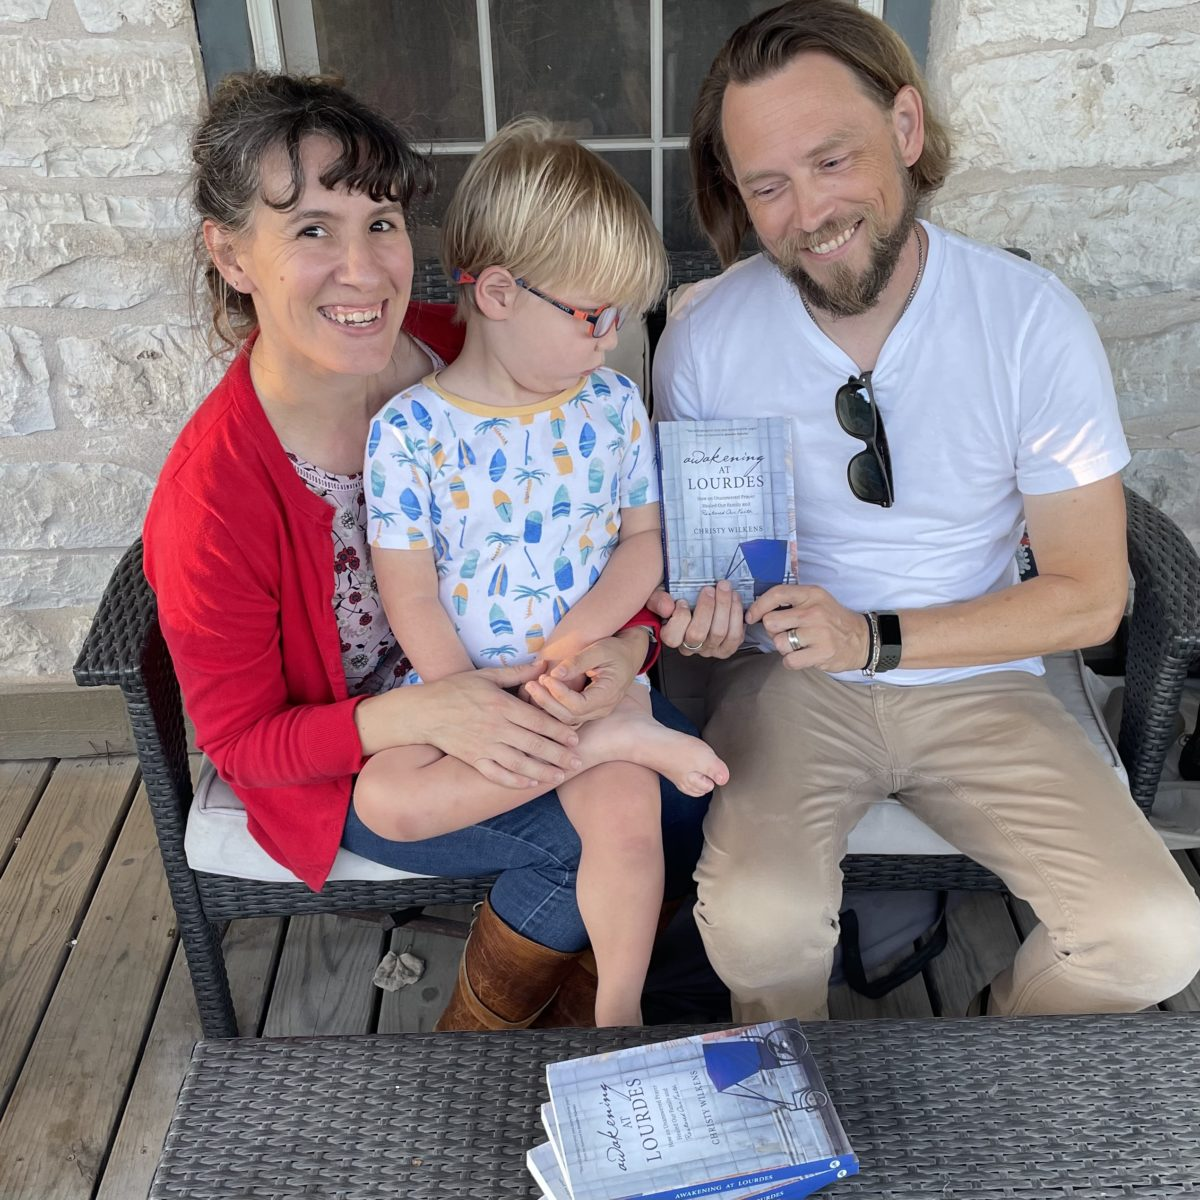 Christy, Todd, and Oscar sit on a wicker bench. Todd is holding a copy of Awakening at Lourdes. On her lap, Christy holds Oscar, who is looking t